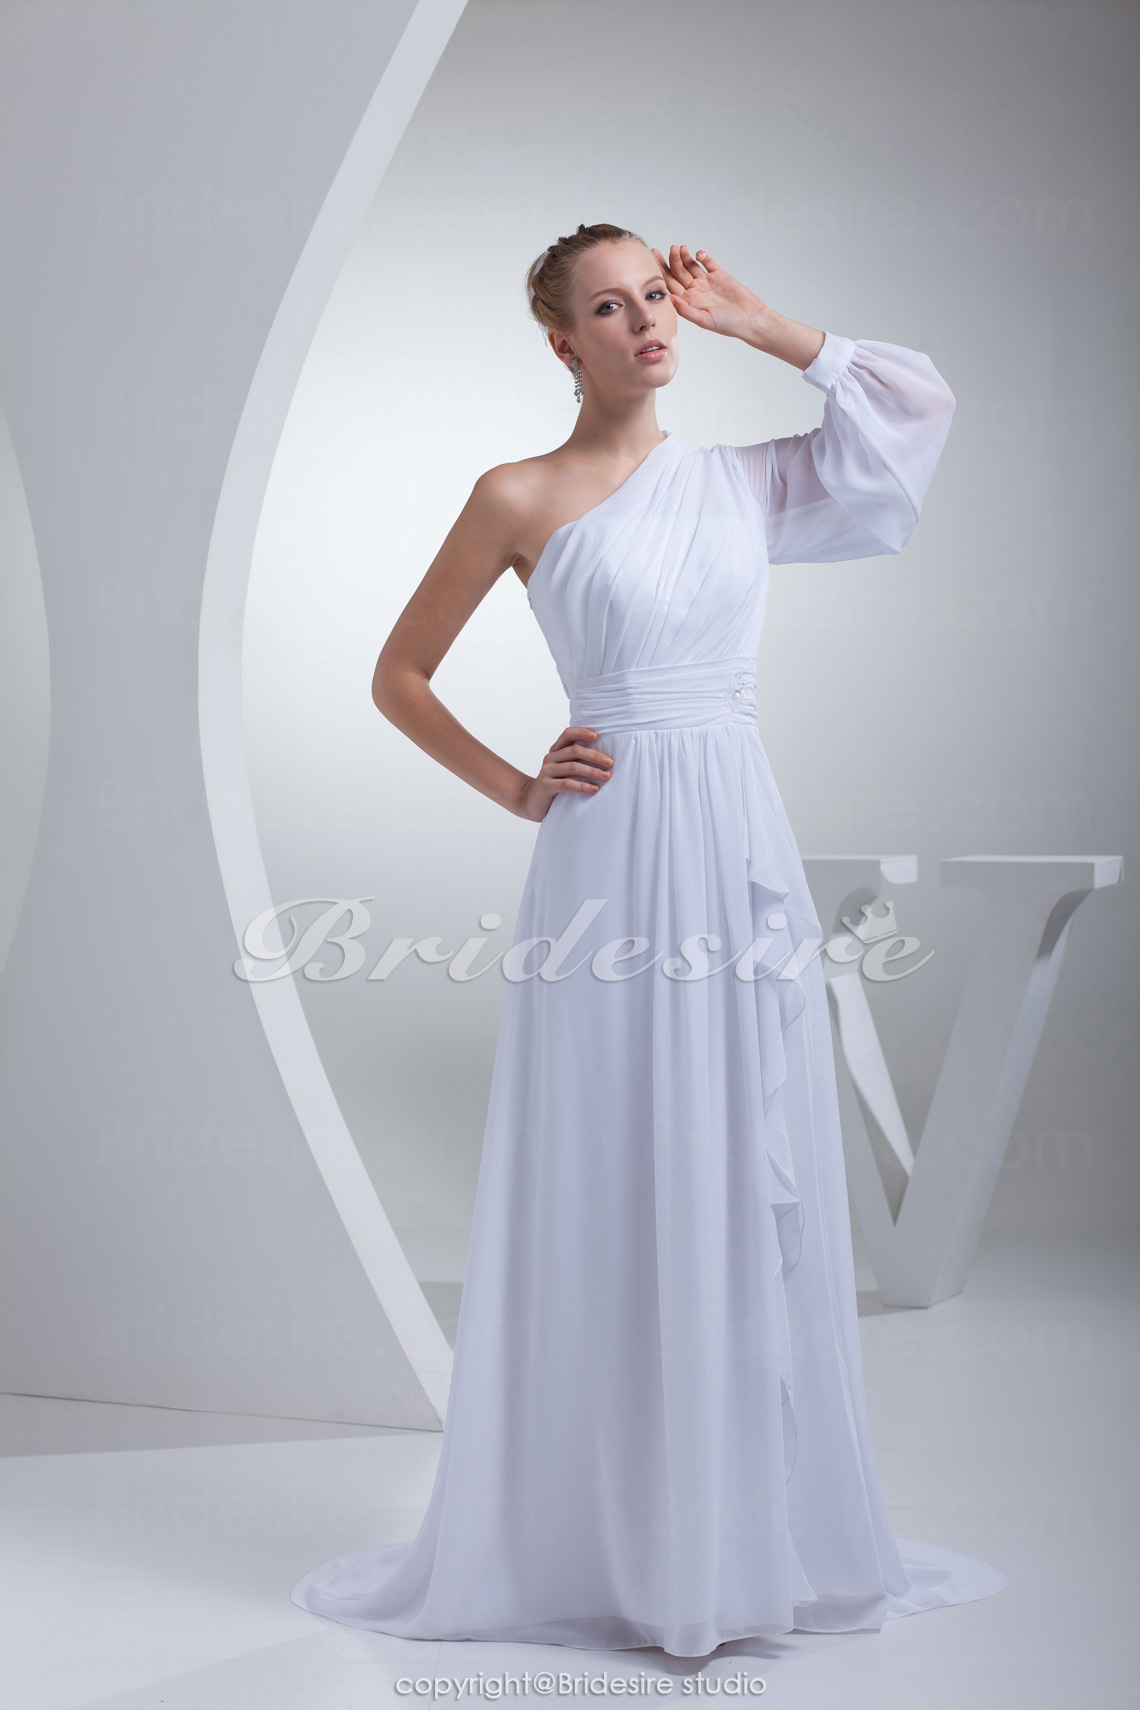 Sheath/Column One Shoulder Court Train Long Sleeve Chiffon Wedding Dress